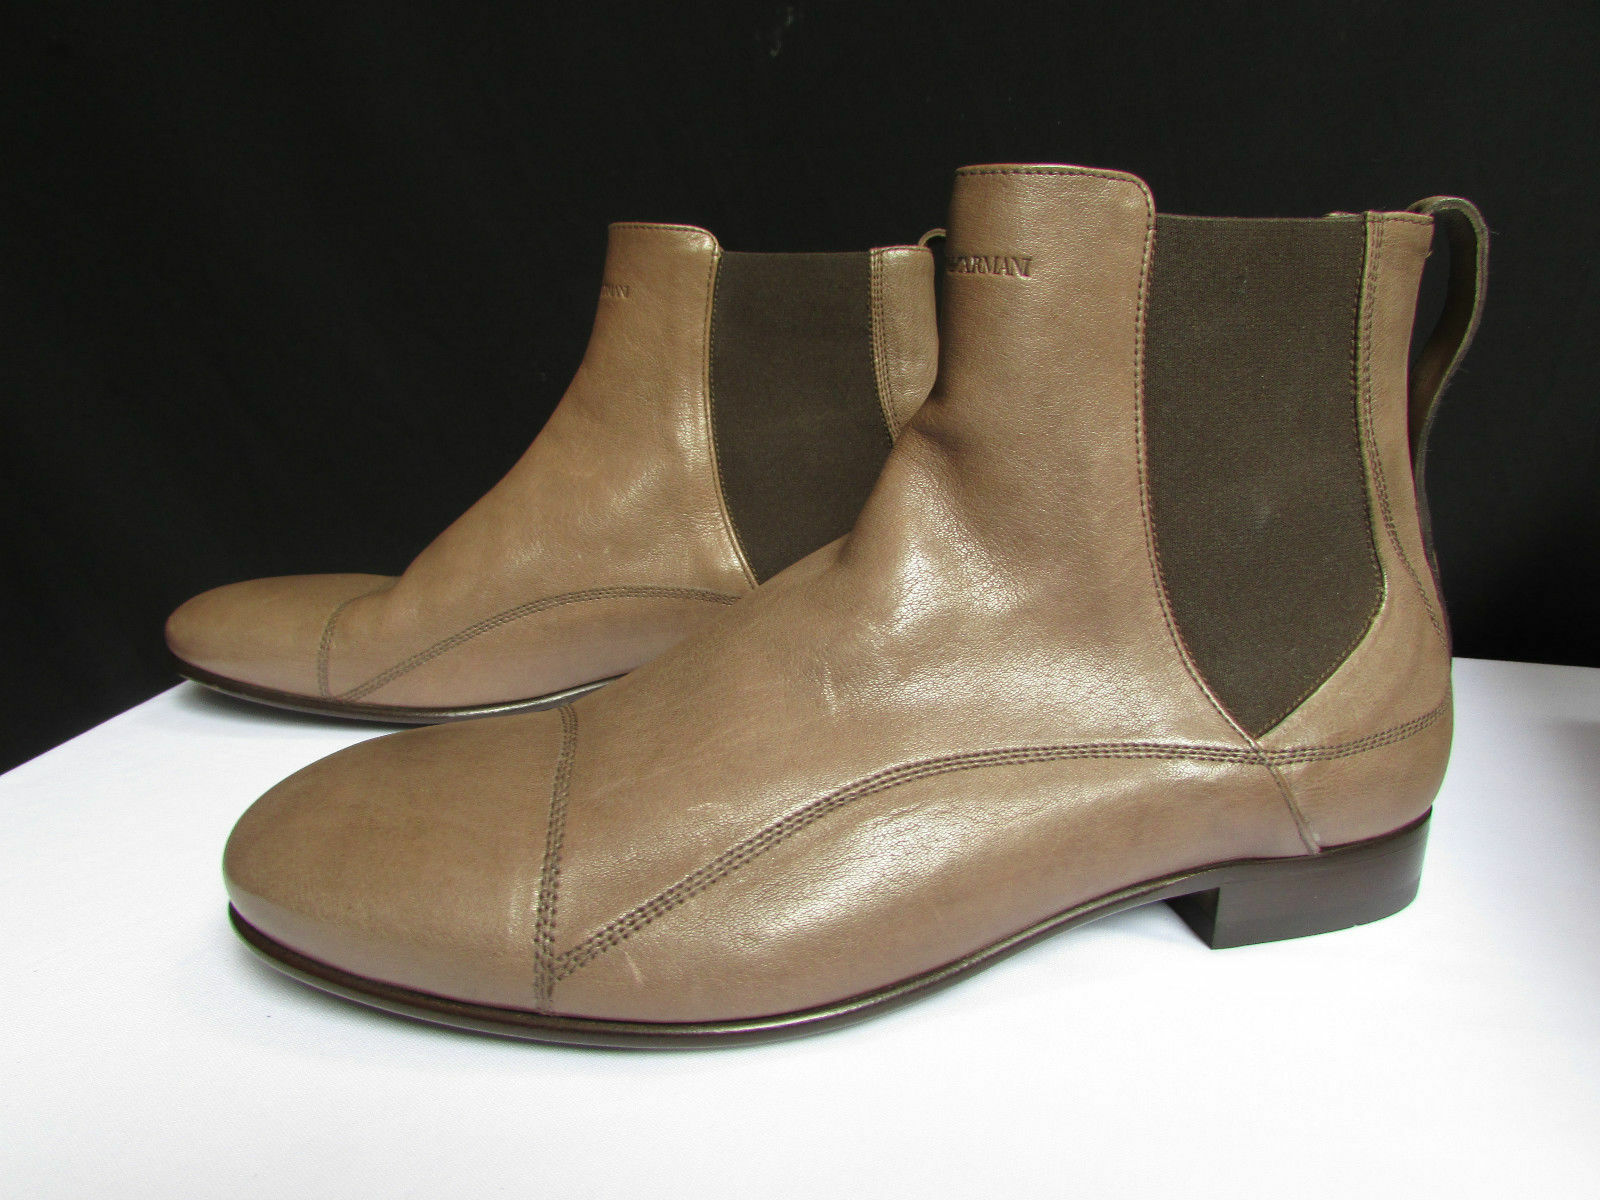 New Emporio Arhommei Hommes Bottes Taupe Brun Clair Chaussures Cuir Classic Fashion 6.5